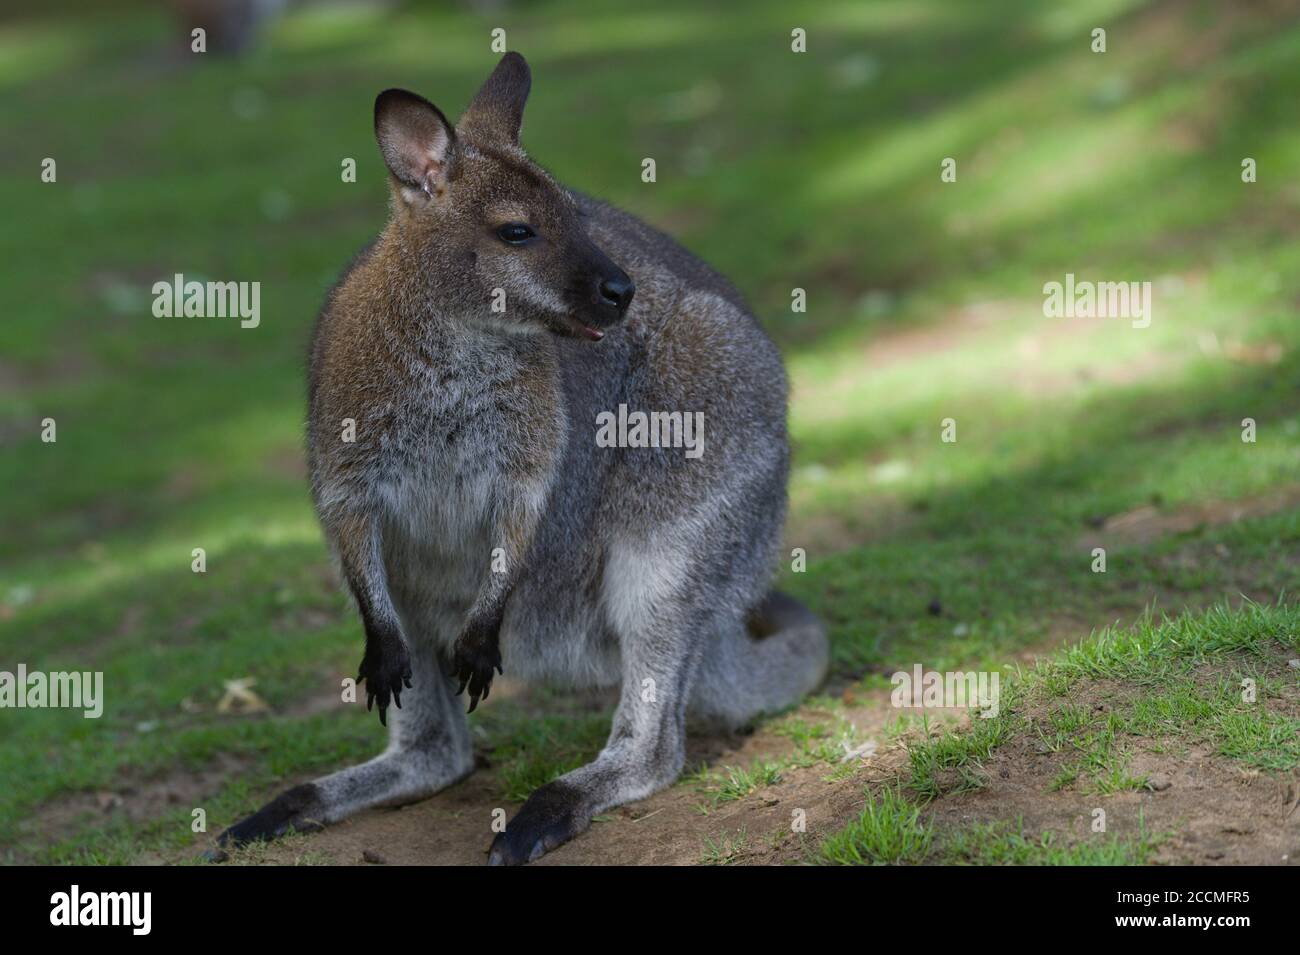 Wallaby Uk High Resolution Stock Photography And Images Alamy